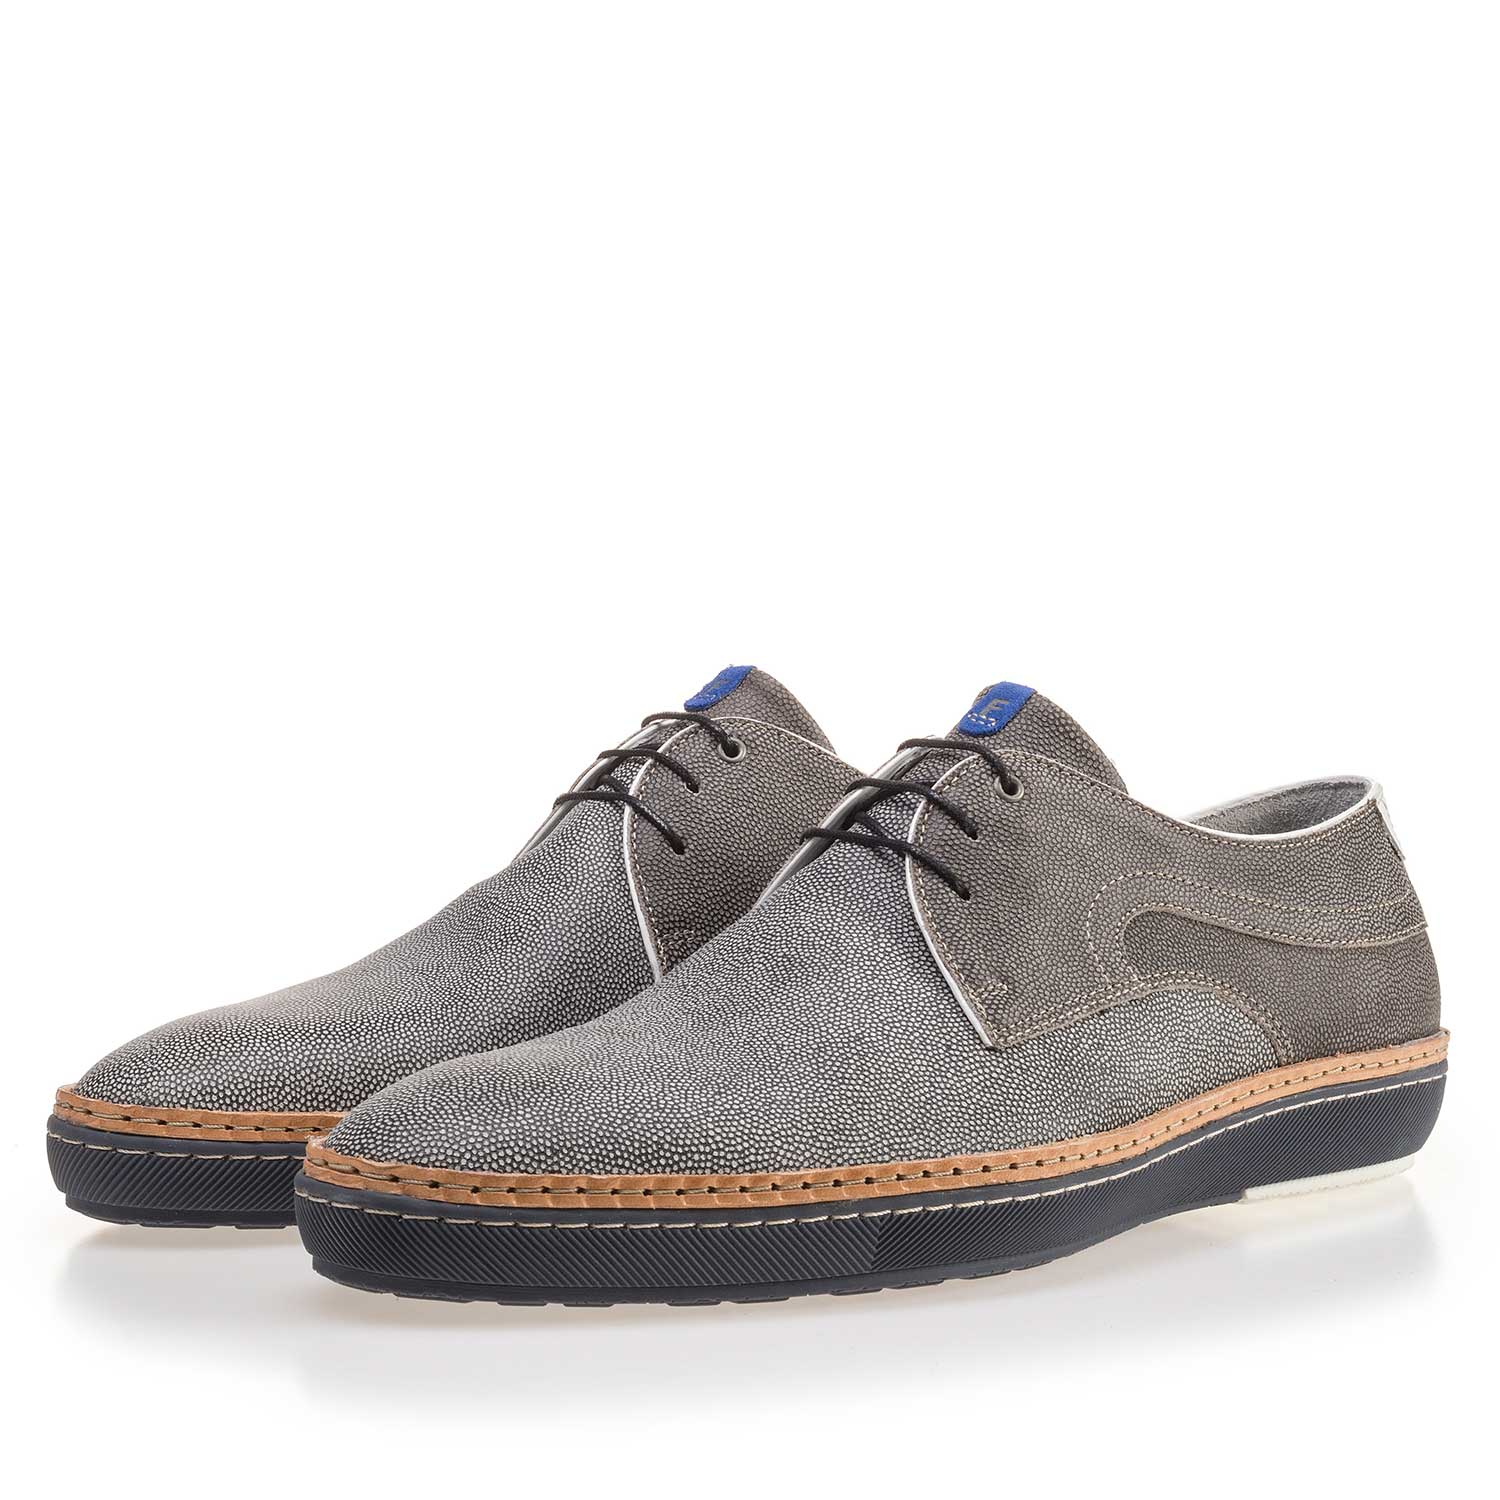 14020/01 - Grey patterned suede leather lace shoe